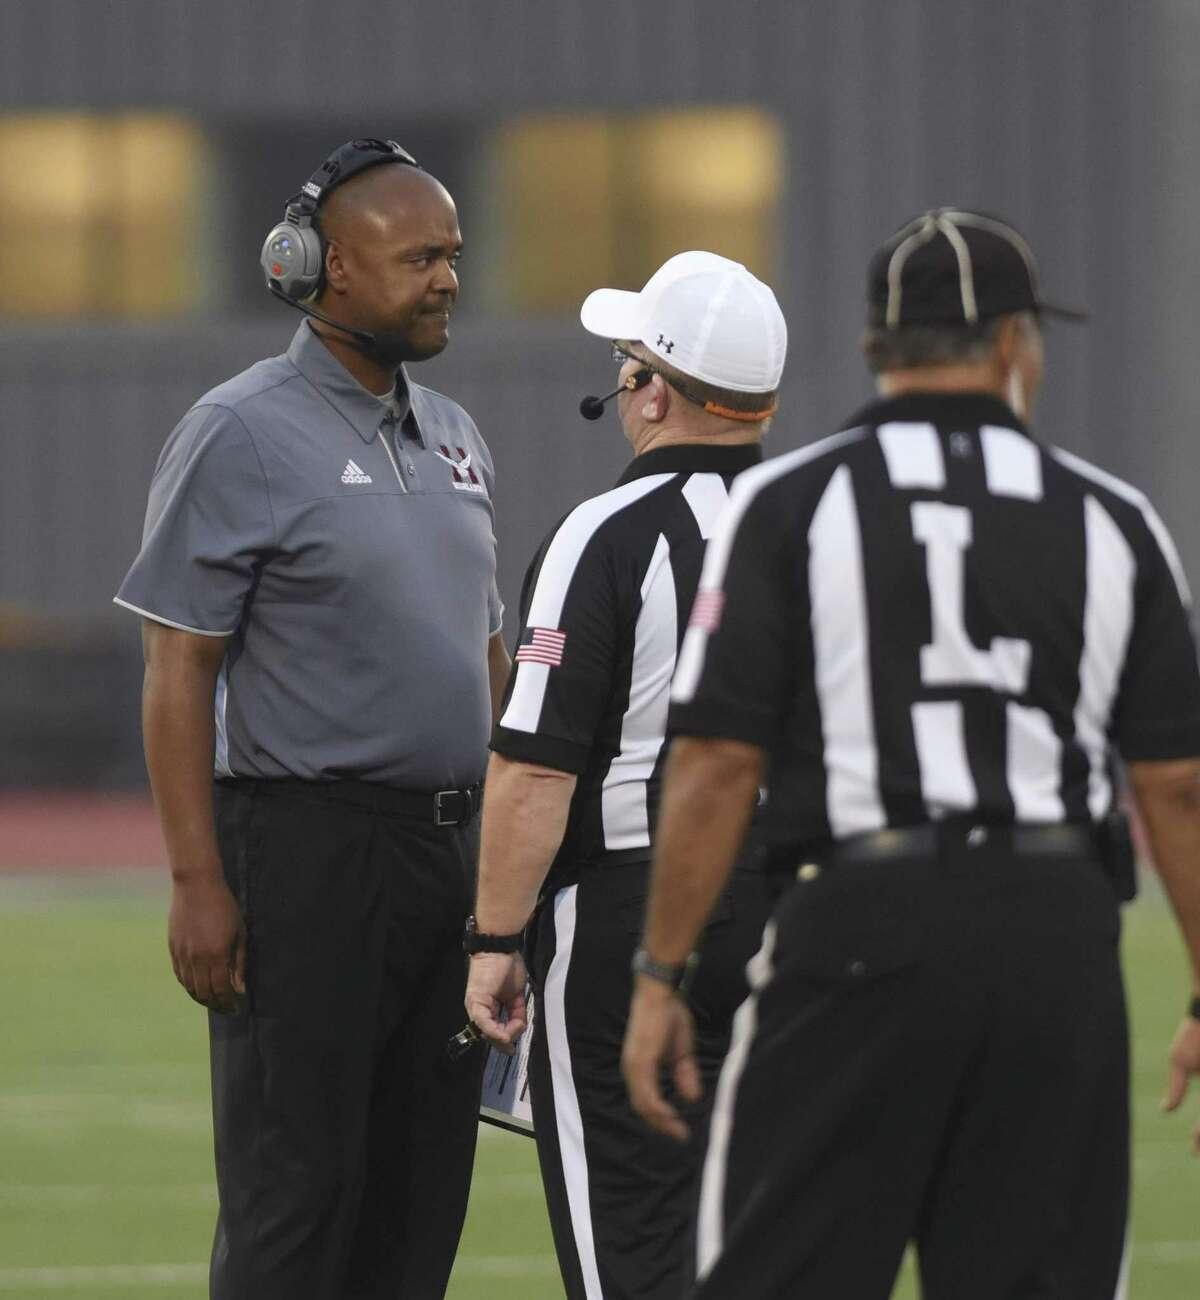 Highlands football coach Hank Willis speaks with officials during high school football action against Jefferson at Alamo Stadium on Thursday, Sept. 20, 2018. Willis said Tuesday he has resigned as Highlands football coach after three seasons.